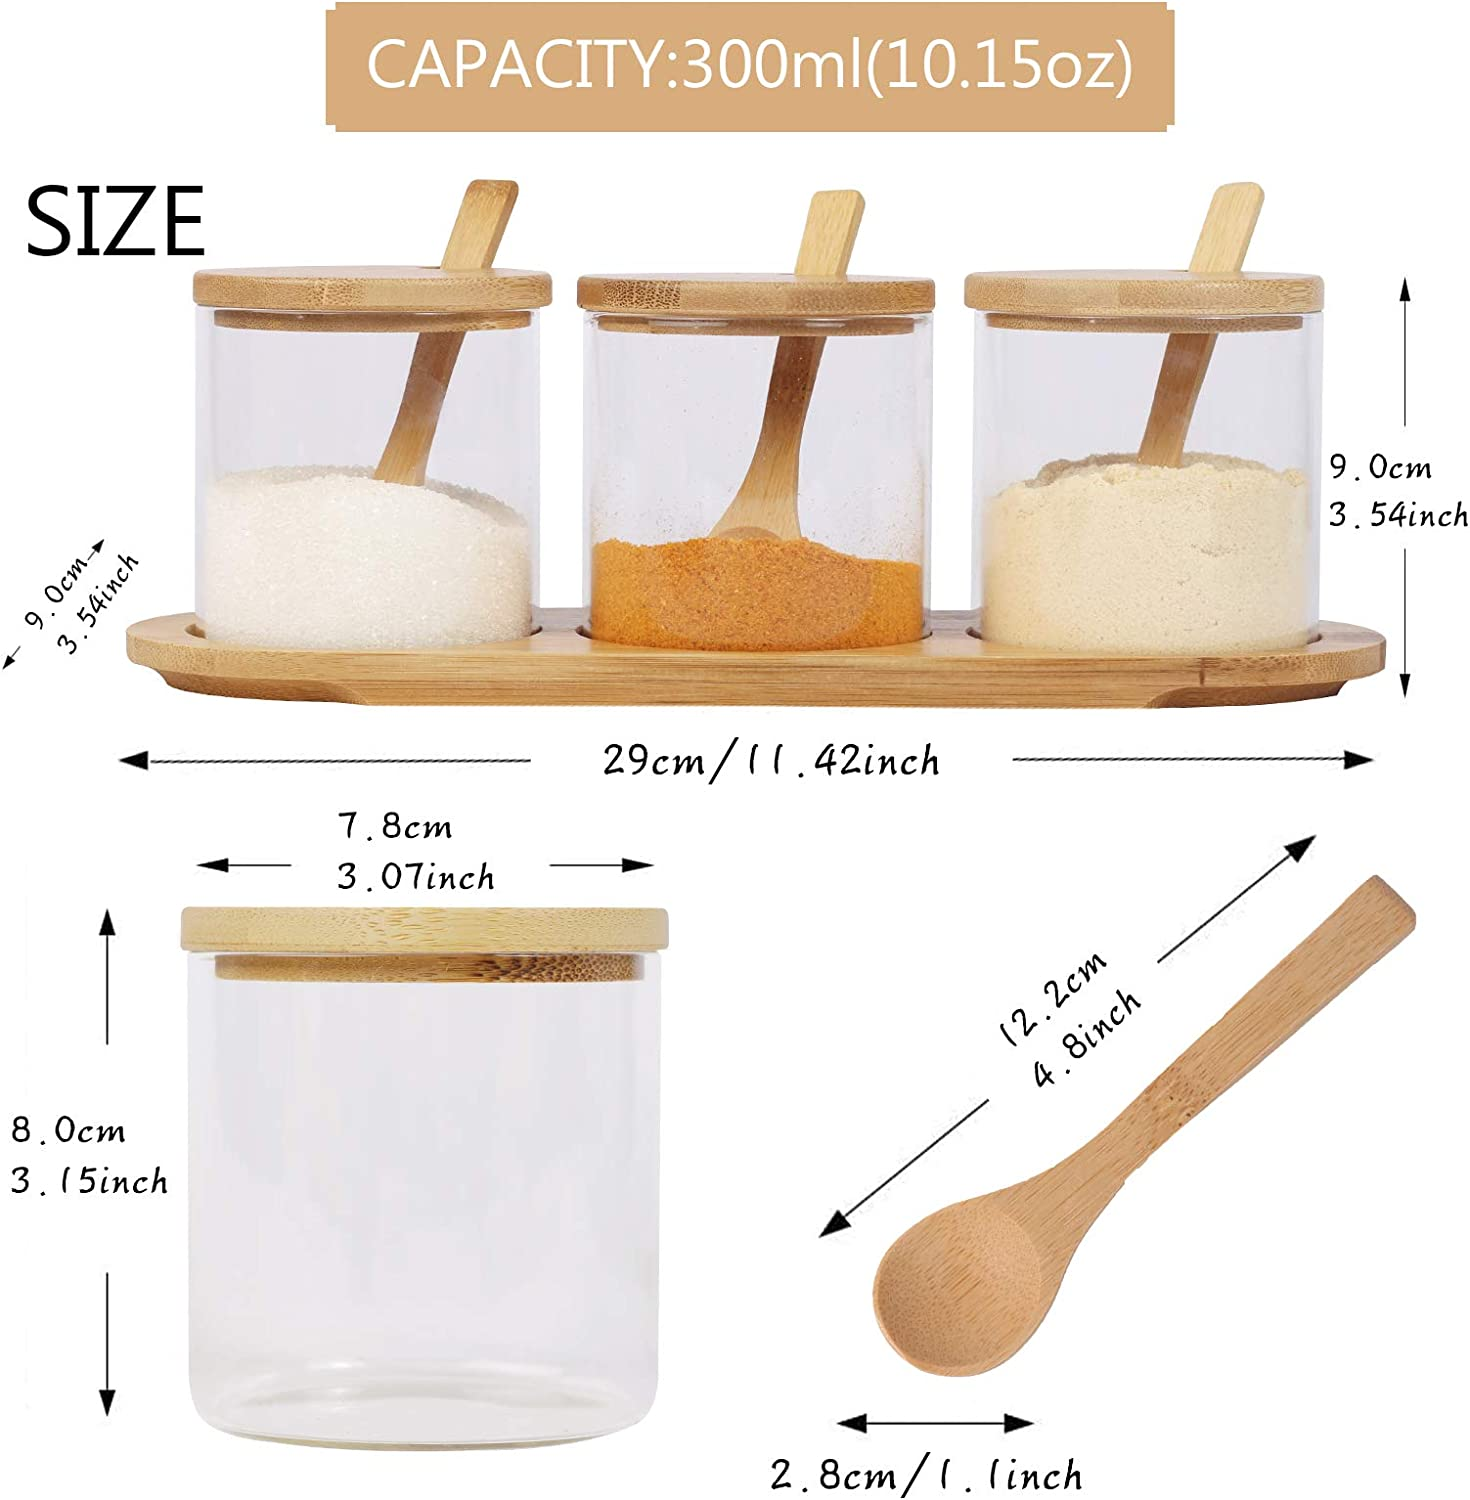 Helical Jar Condiment Jars with Lids and Spoons Salt Sugar Spice Pepper Box Canisters Pots with Bamboo Wooden Base for Home Kitchen Coffee Bar Set of 3 10oz Glass Seasoning Containers with Tray